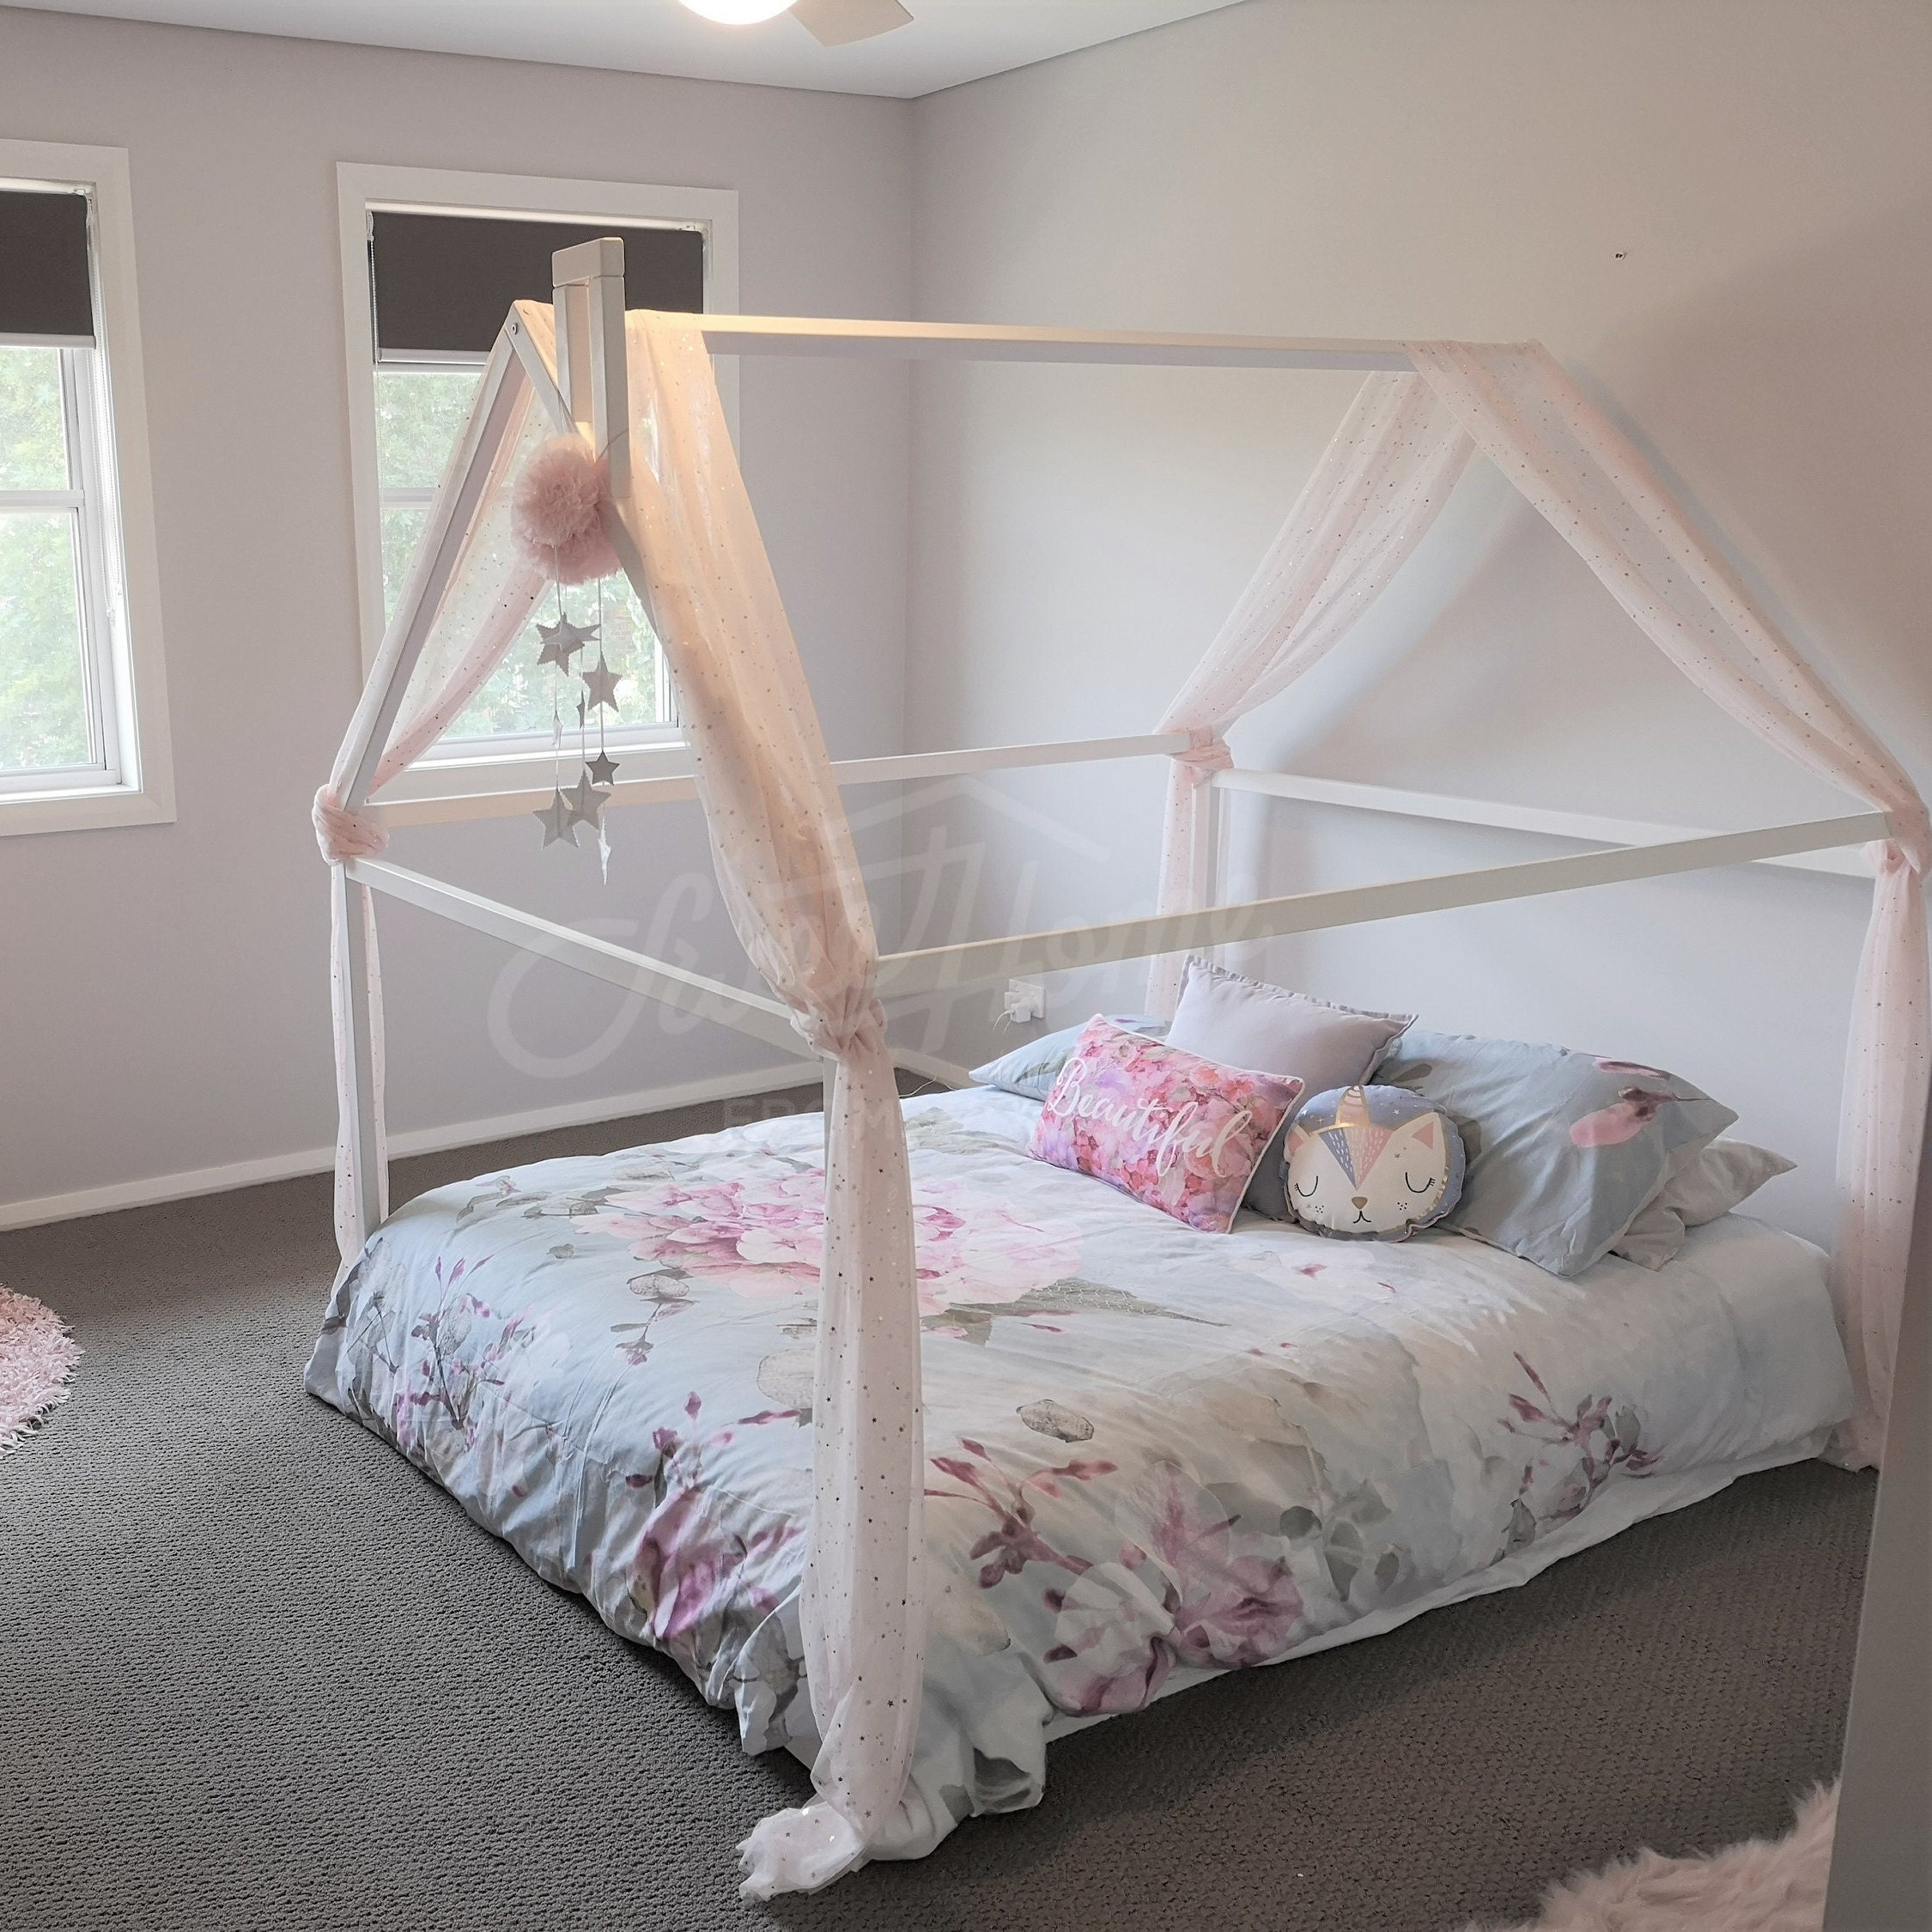 wood bed full double toddler bed frame tent bed wooden etsy 11925 | il fullxfull 1757542388 p7js